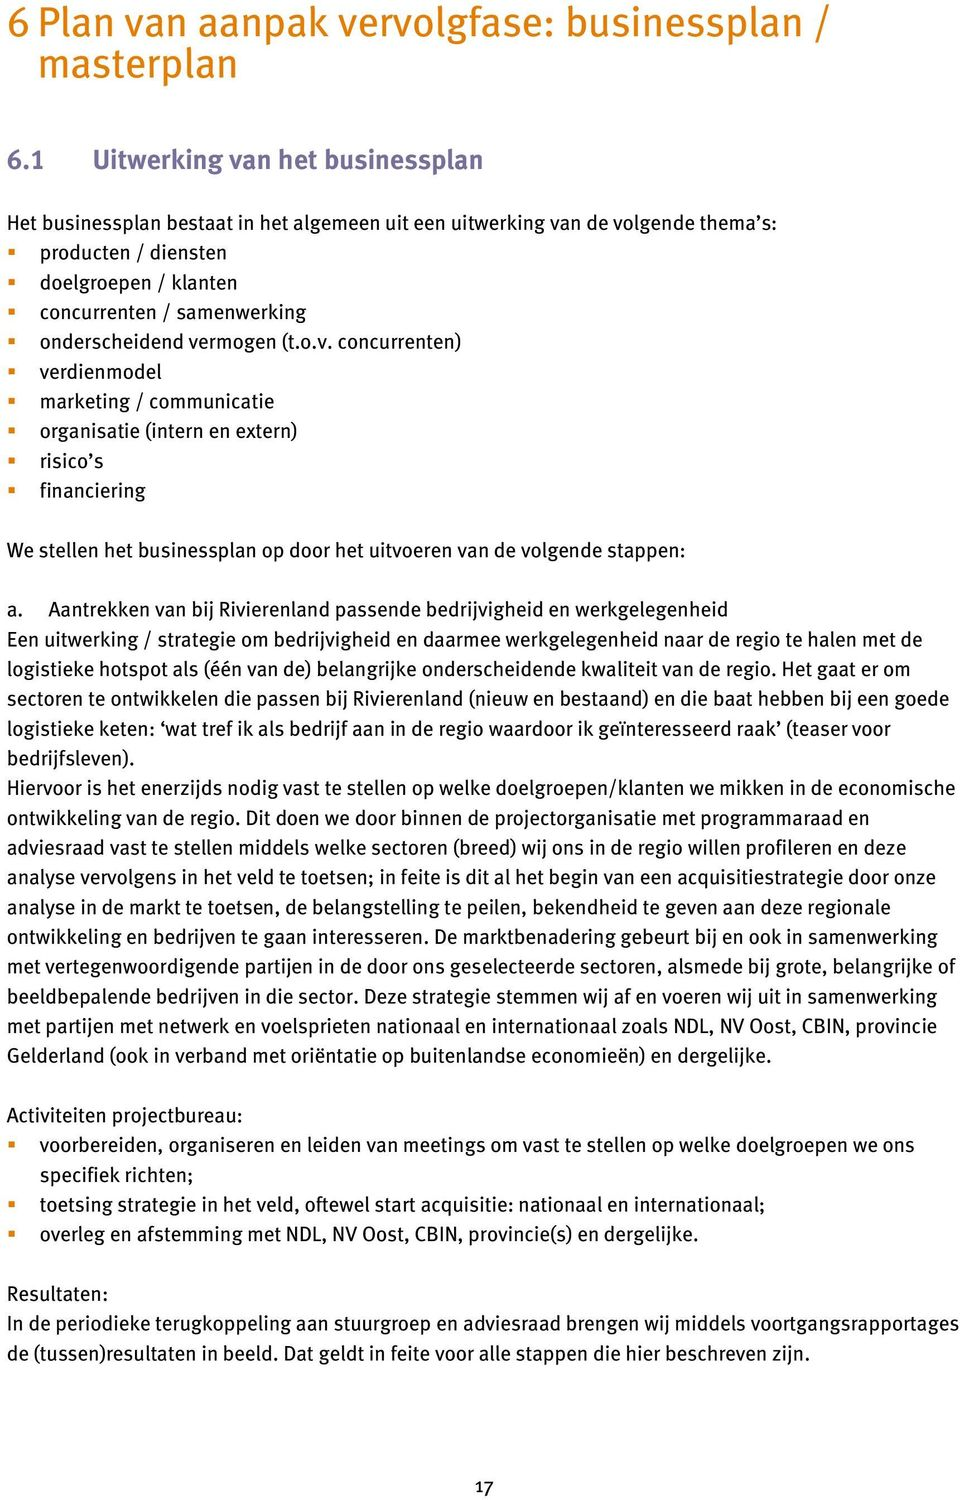 onderscheidend vermogen (t.o.v. concurrenten) verdienmodel marketing / communicatie organisatie (intern en extern) risico s financiering We stellen het businessplan op door het uitvoeren van de volgende stappen: a.